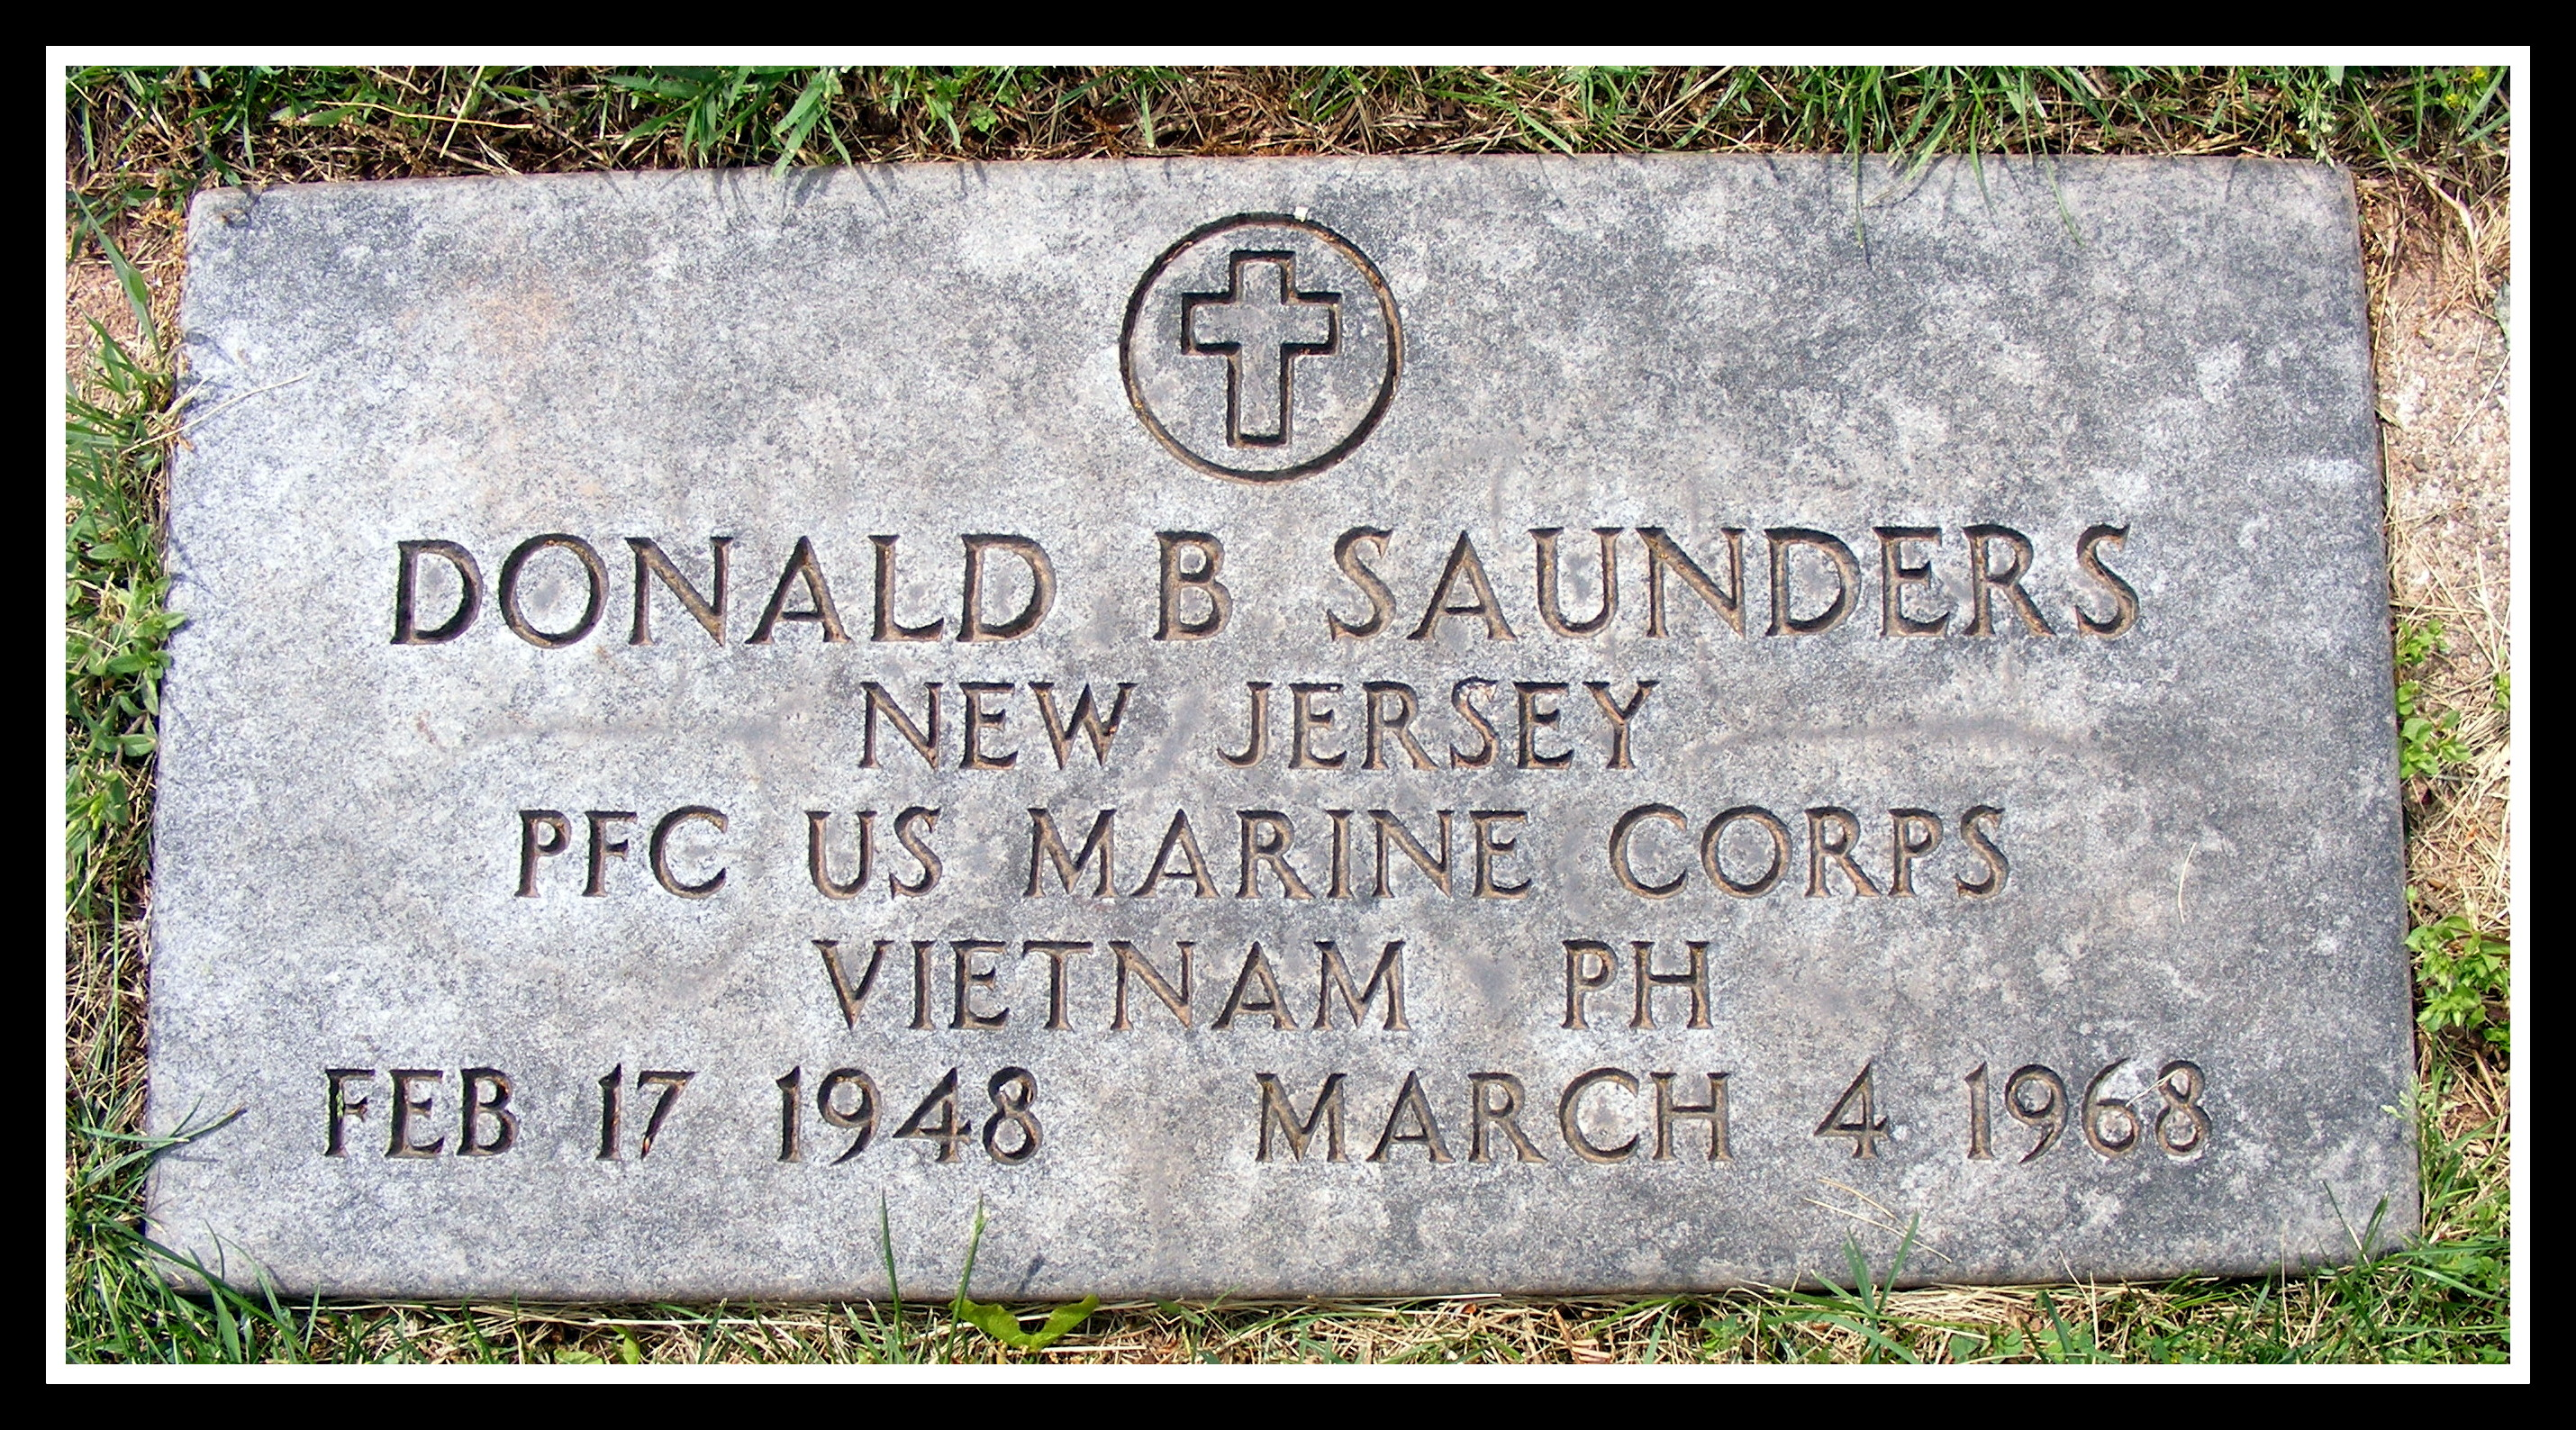 Donald B. Saunders, USMC, KIA Vietnam, photo by Anthony Buccino